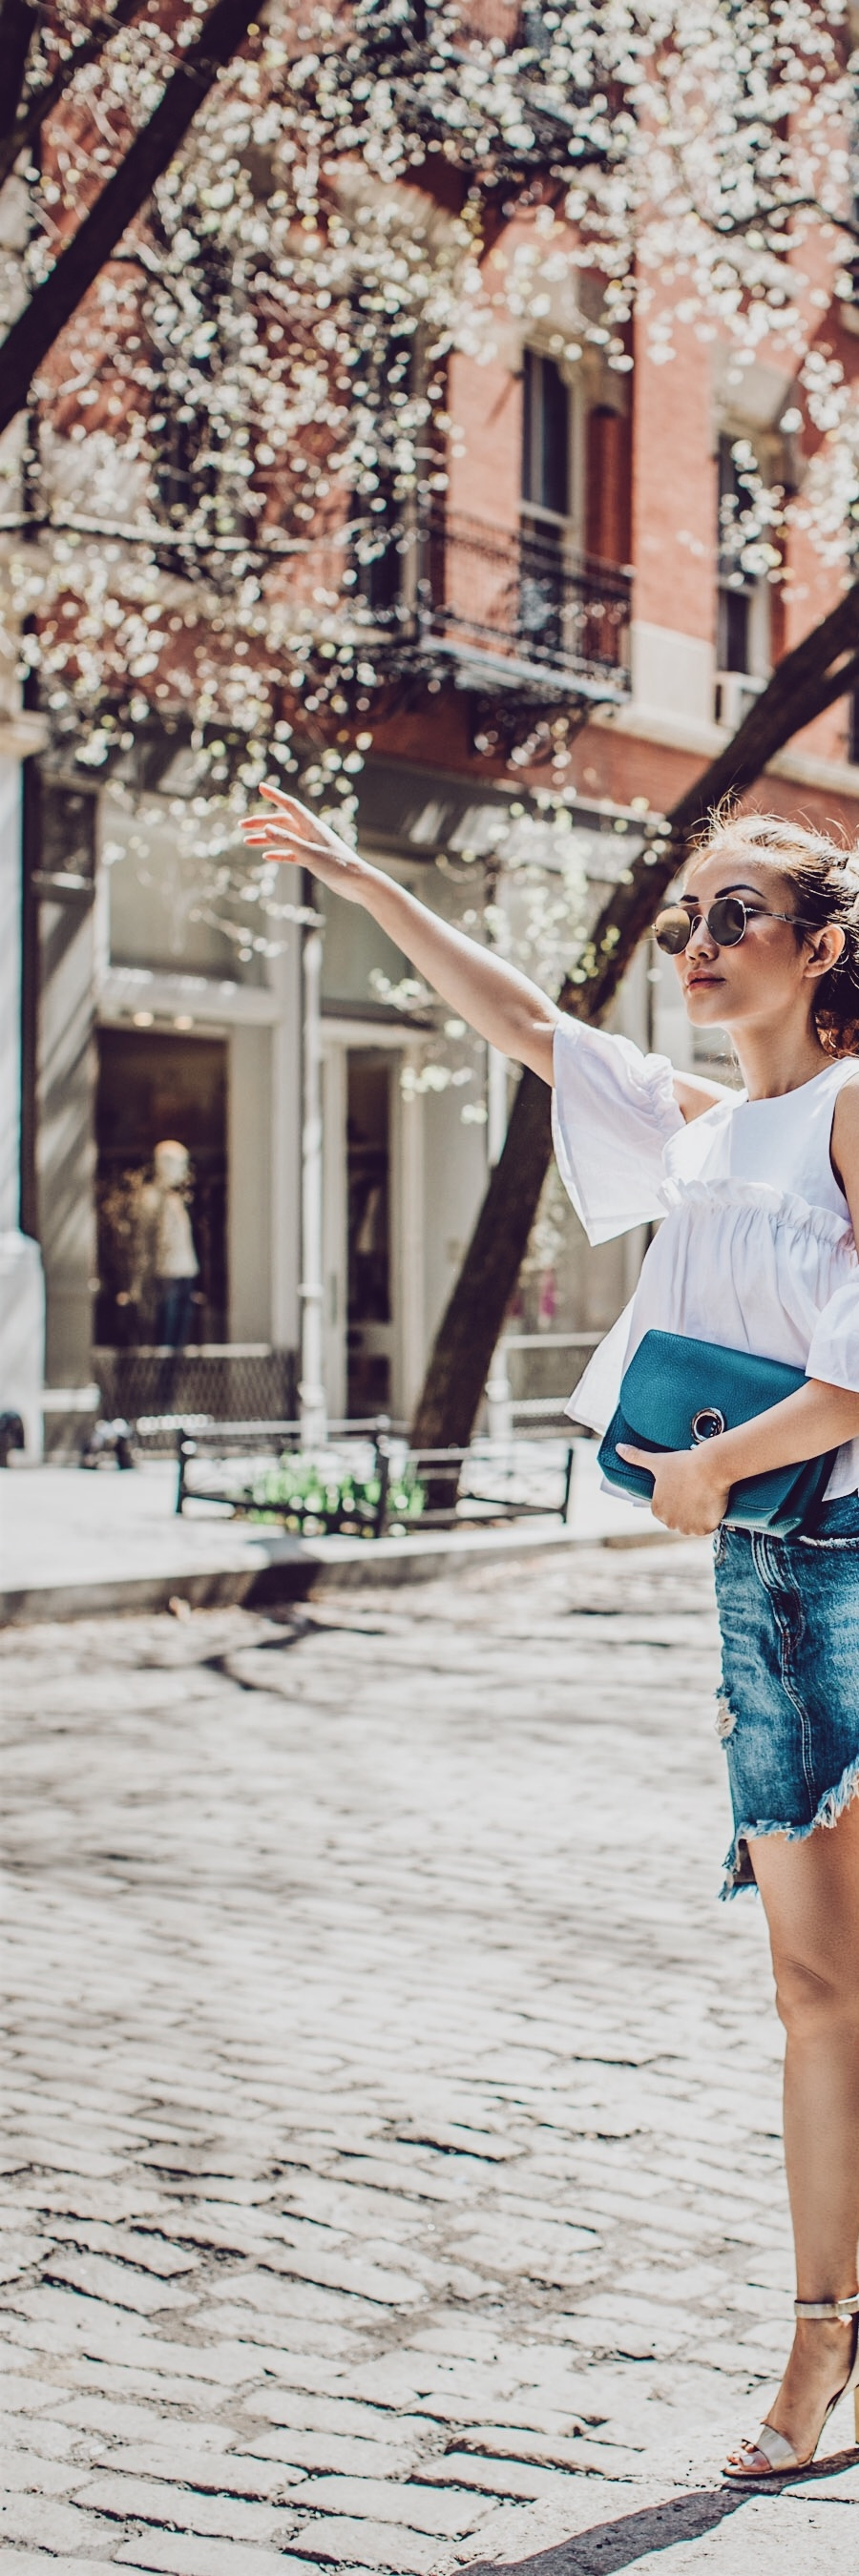 Instagram Outfits Round Up: Spring to Summer